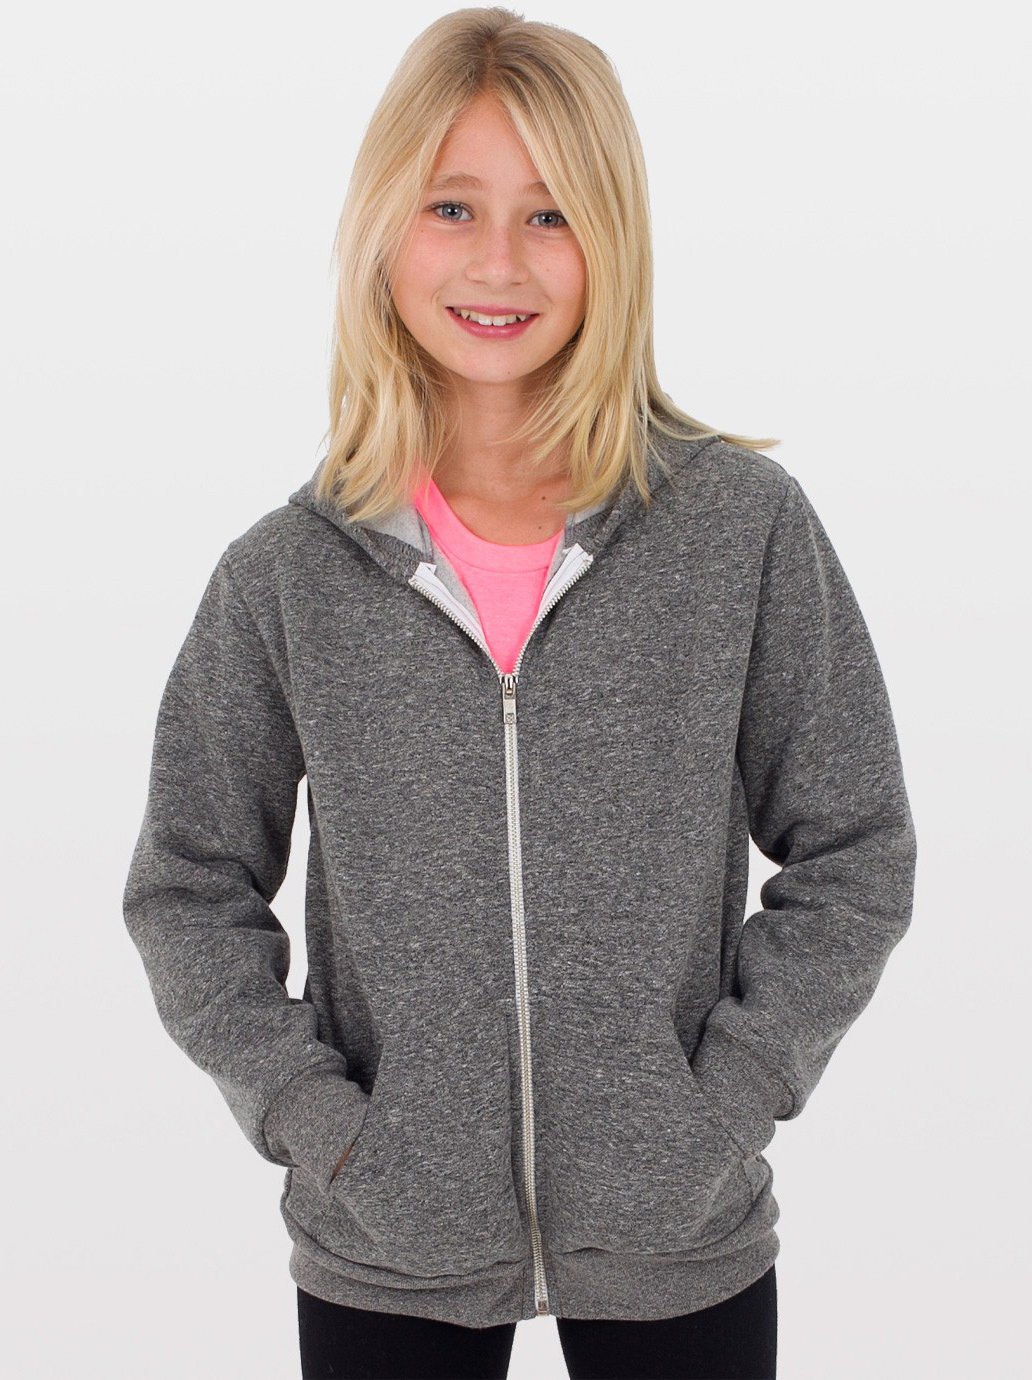 American Apparel MT297 - Youth Salt and Pepper Hoody